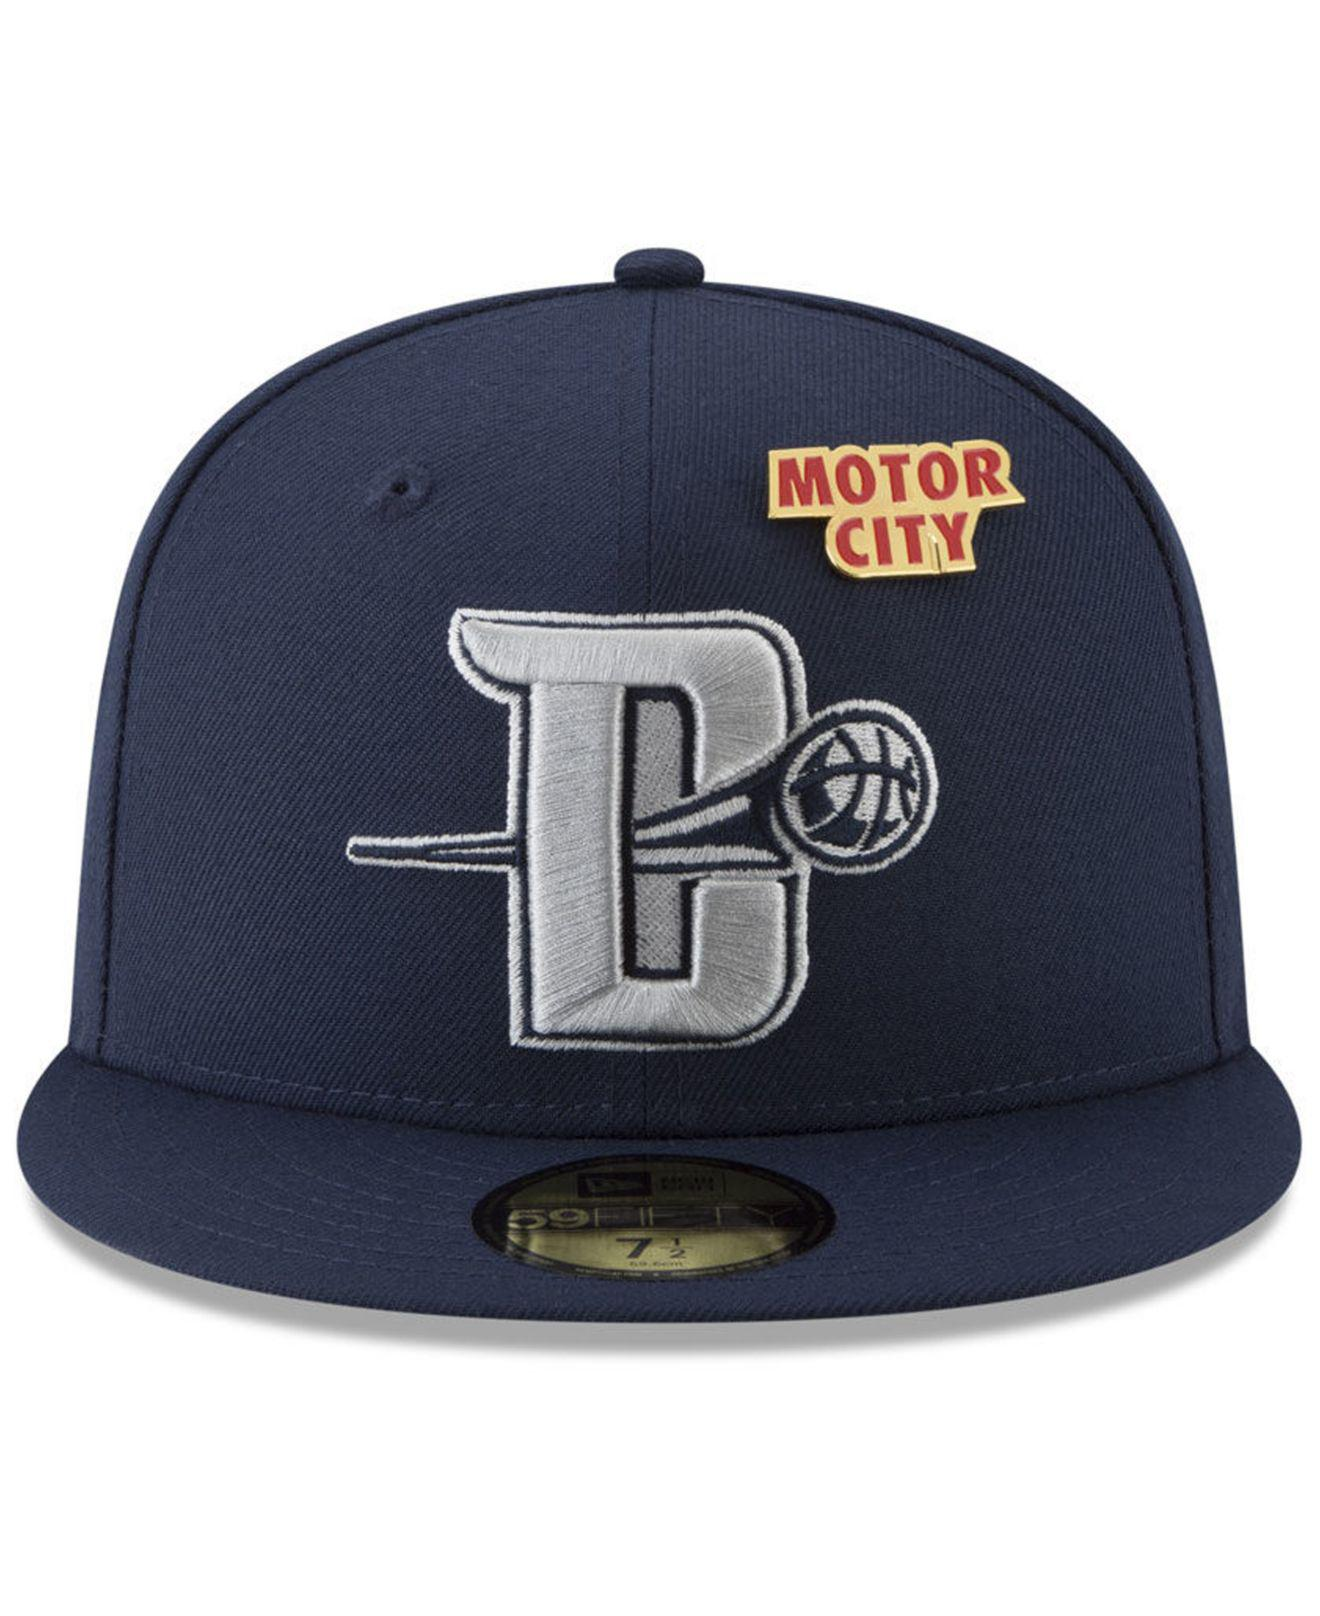 separation shoes 0548d 00c45 Lyst - KTZ Detroit Pistons City On-court 59fifty Fitted Cap in Blue for Men